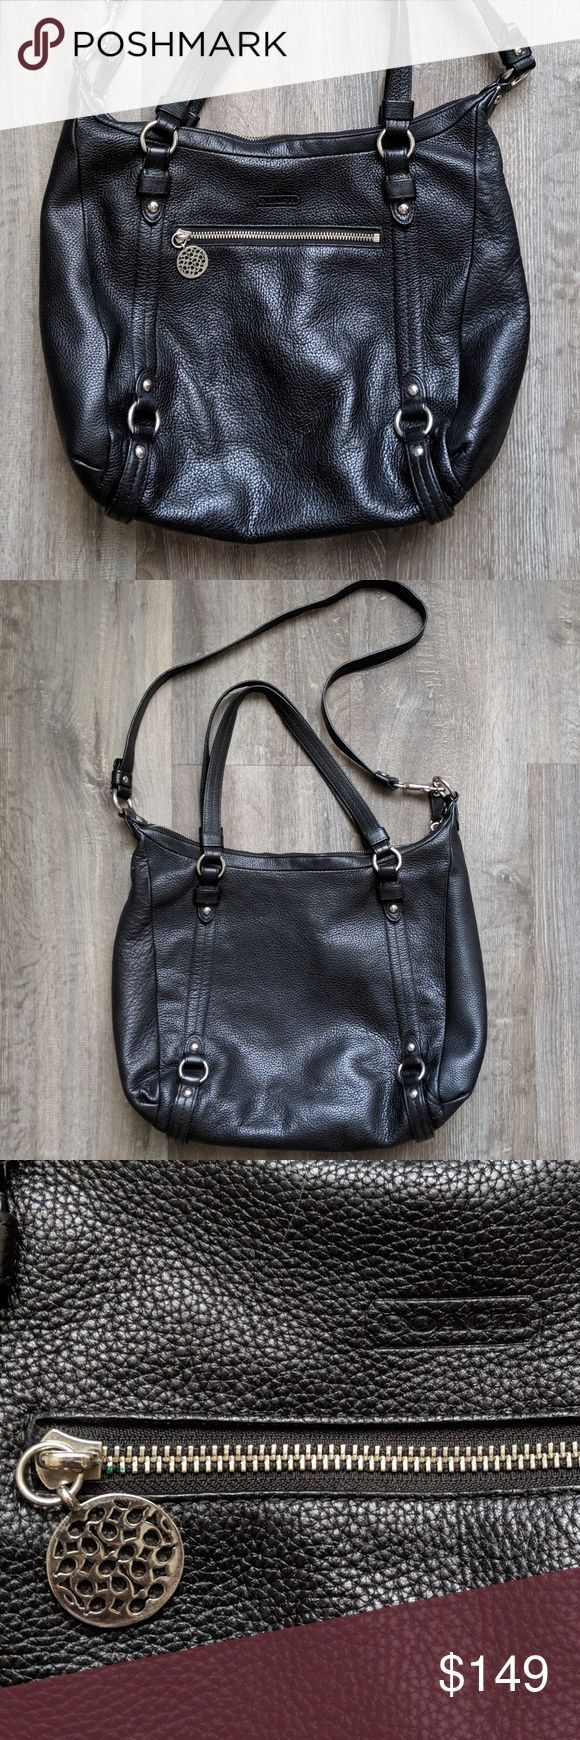 Coach Alexandra Leather Bag Coach Alexandra Black Pebble Leather Hobo Tote Messe Coach Alexandra Leather Bag Coach Alexandra Black Pebble Leather Hobo Tote Messe